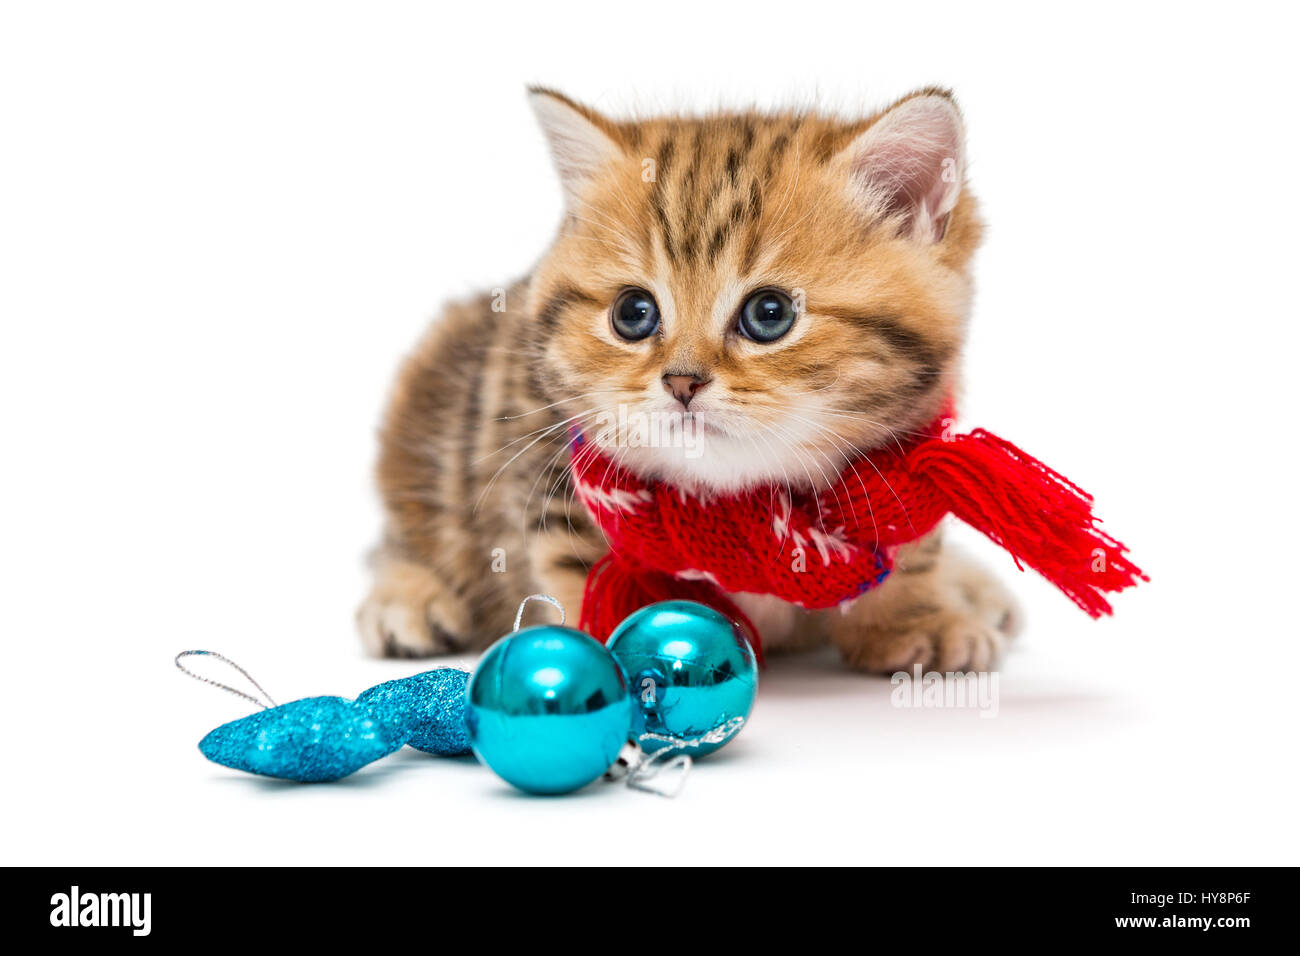 Cute kitten breeds British Marble in a red scarf isolated on